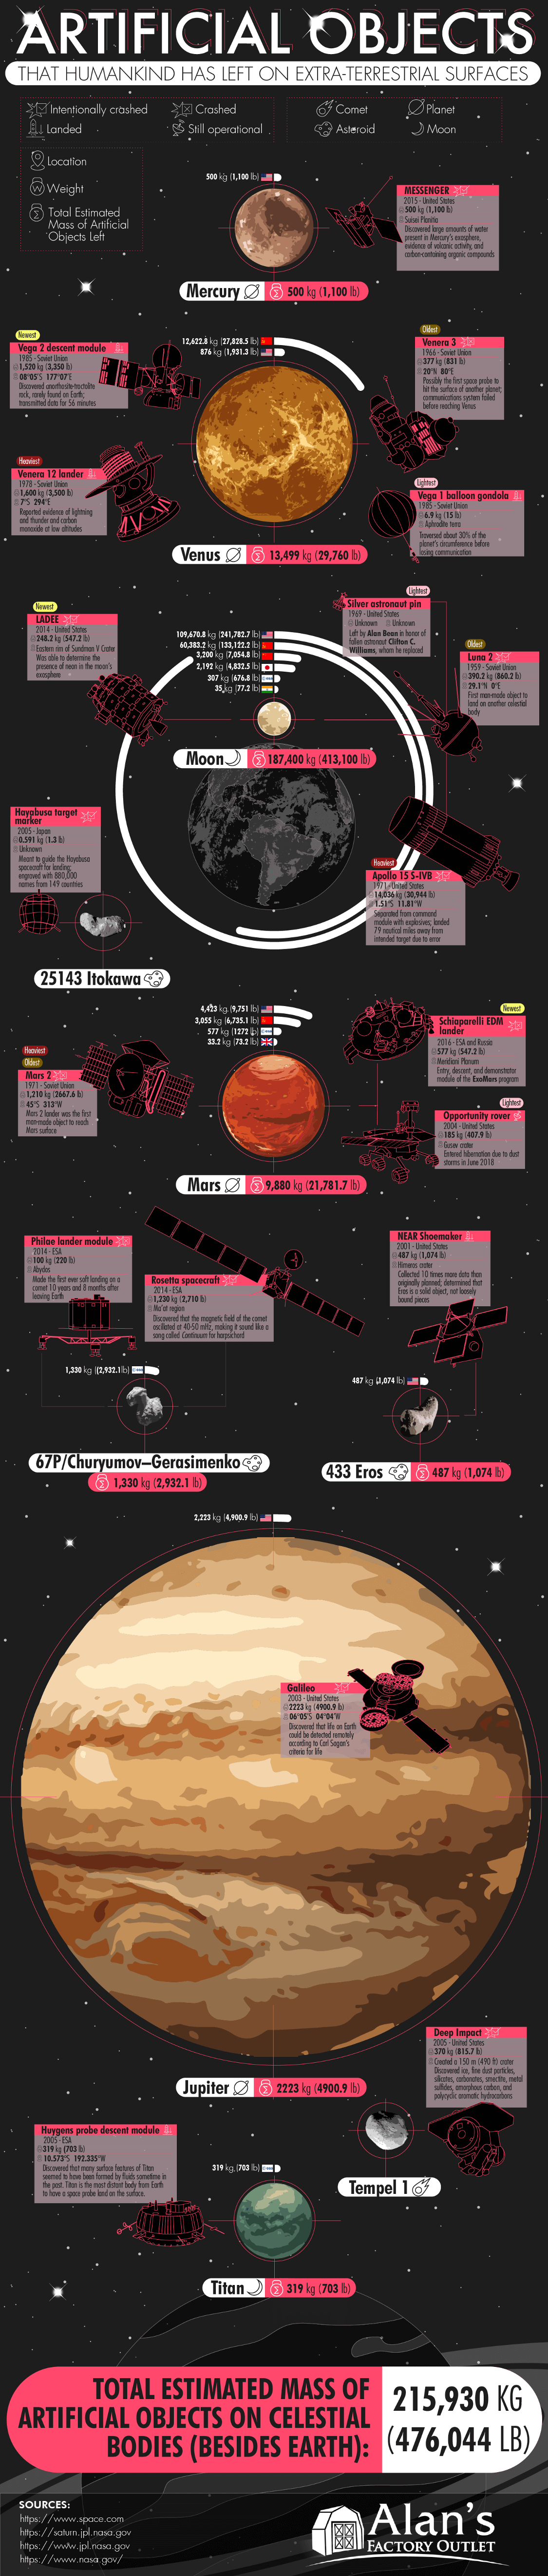 Humankind's Track Record for Creating 'Space Junk' - Infographic